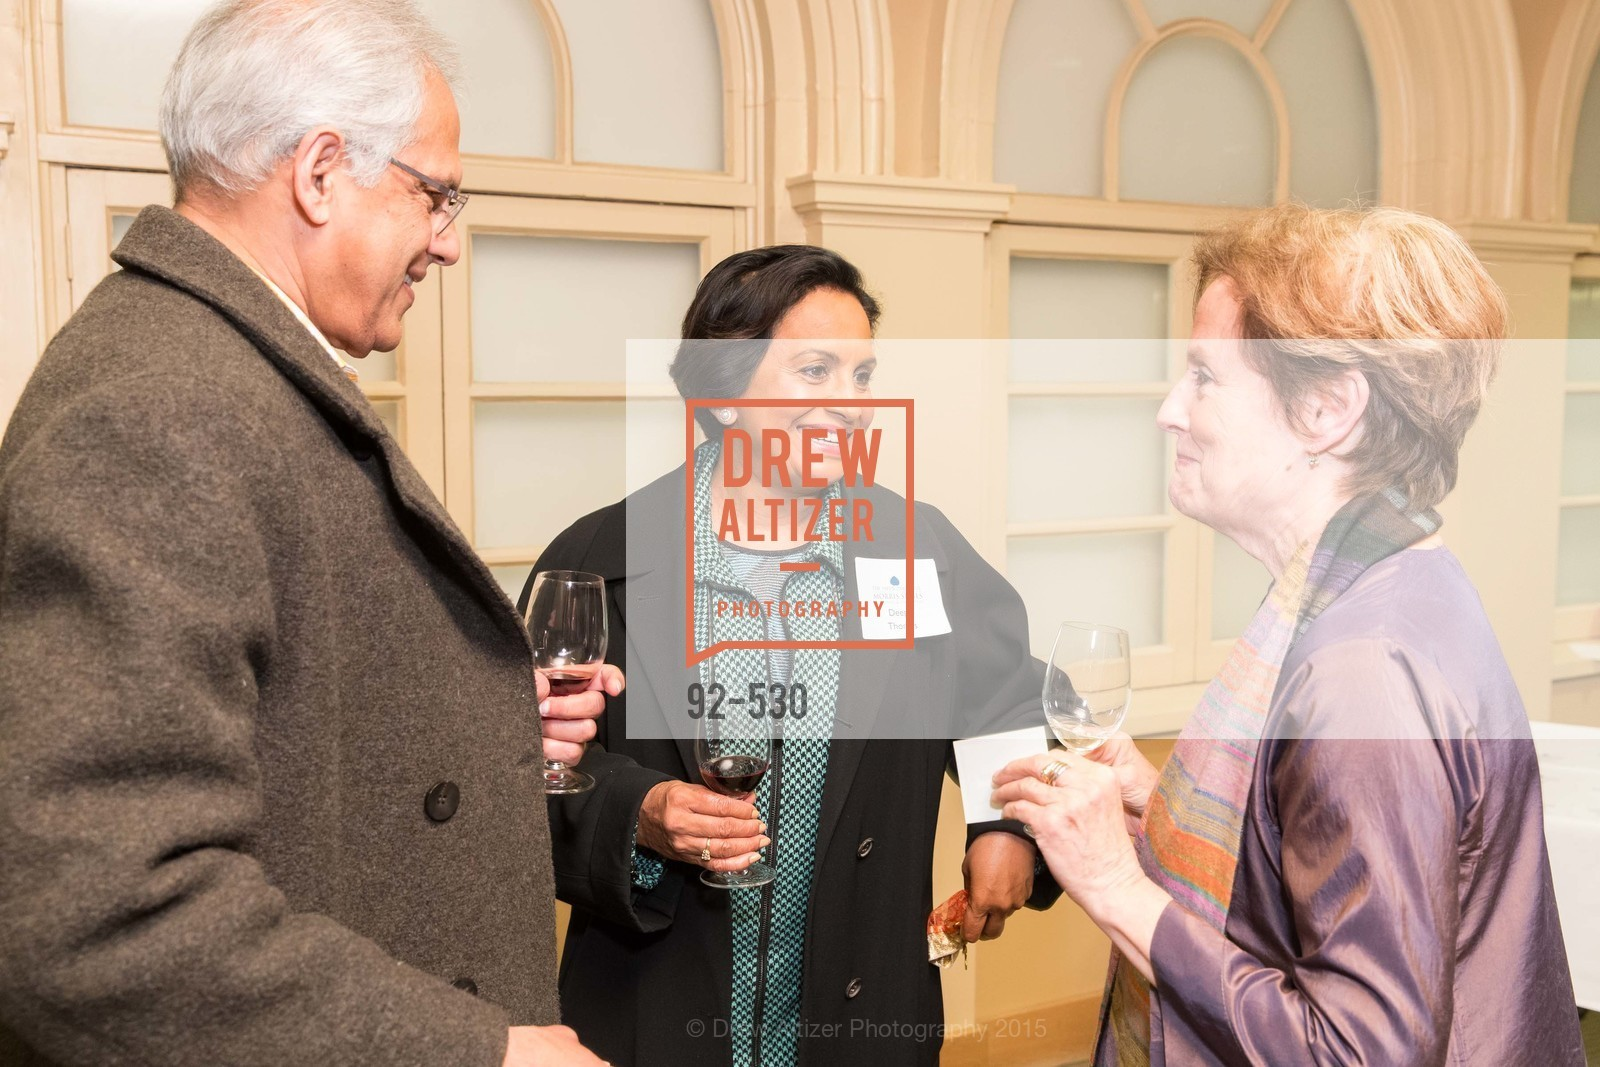 Extras, The Aspen Institute Presents The Morris Series  Featuring Alice Waters, November 16th, 2015, Photo,Drew Altizer, Drew Altizer Photography, full-service event agency, private events, San Francisco photographer, photographer California